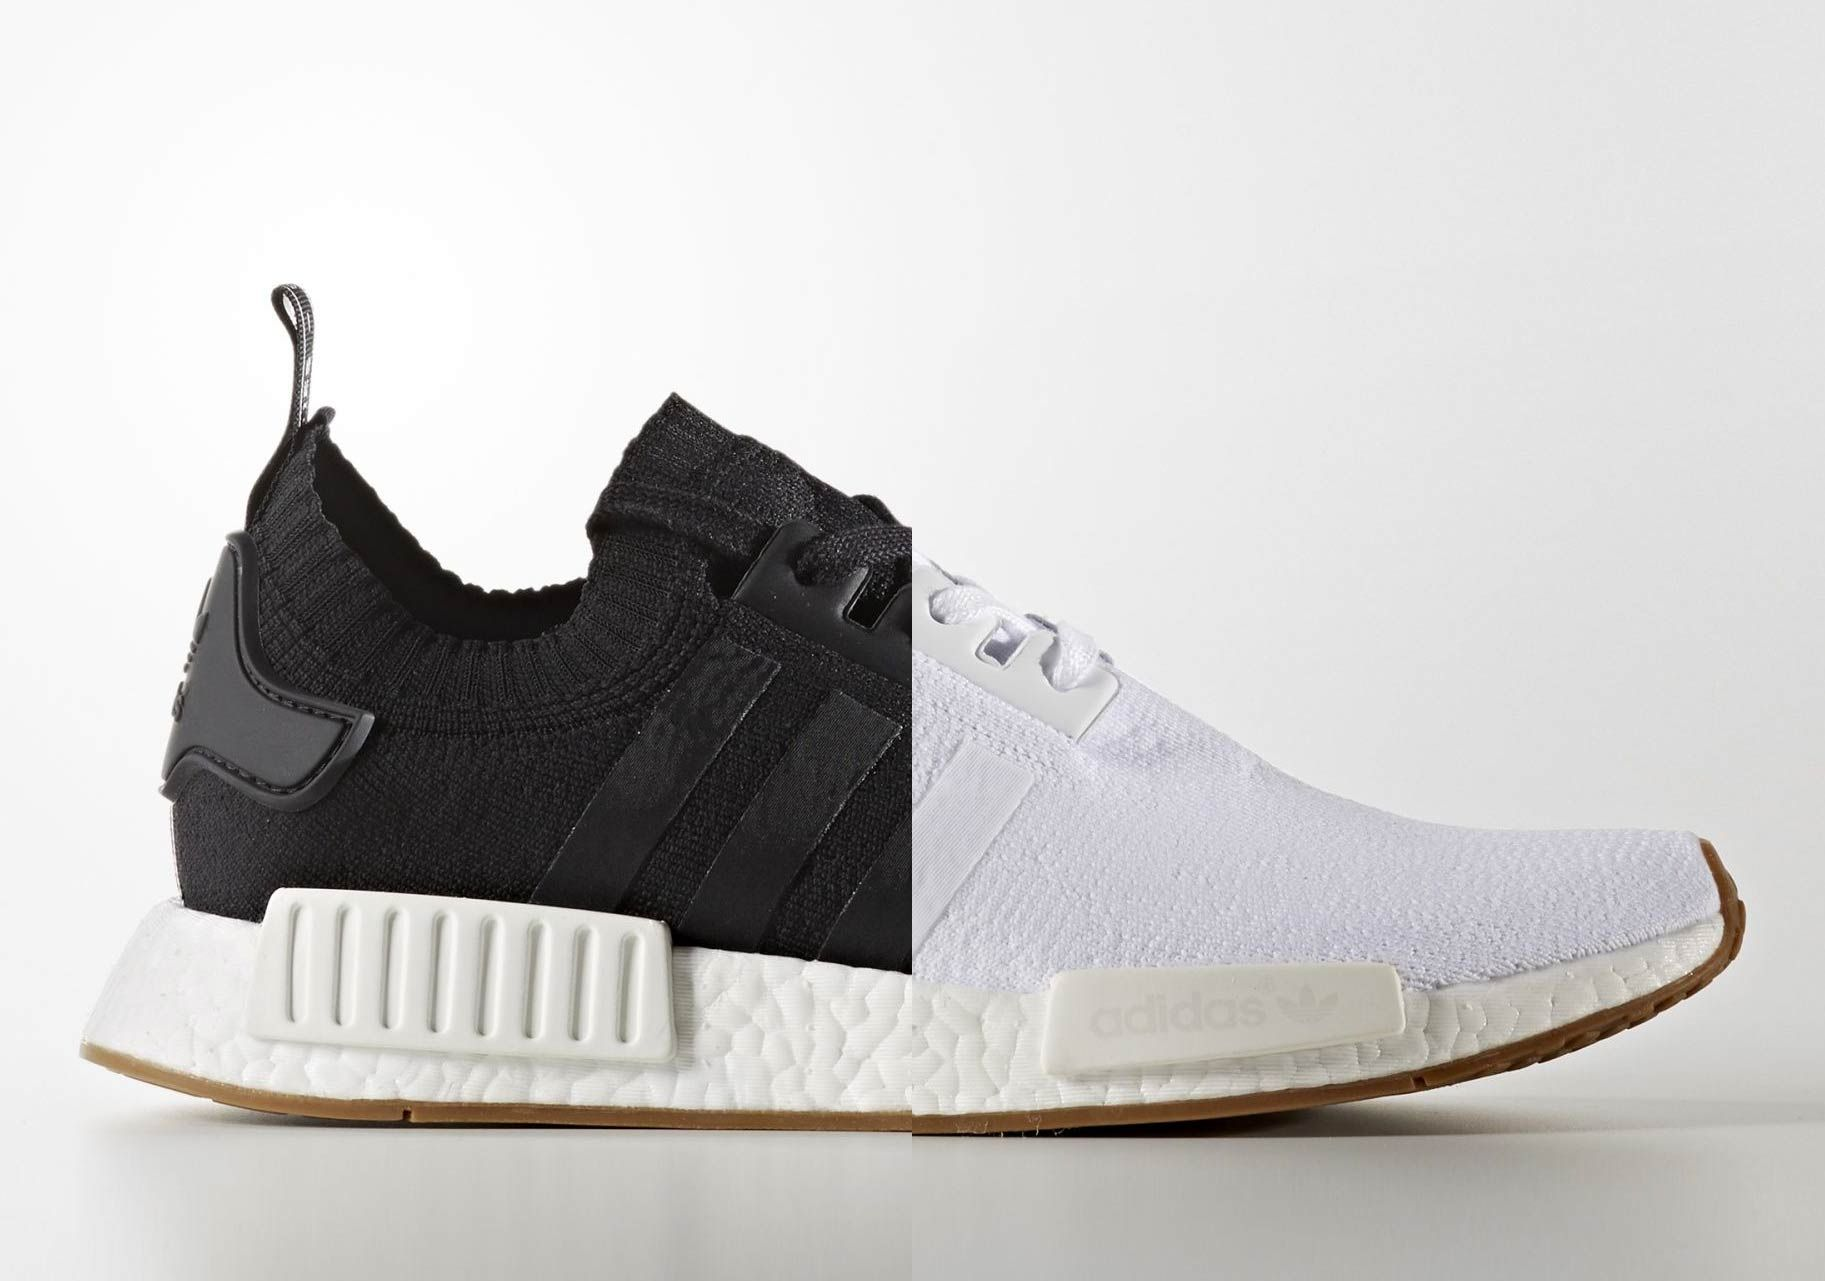 Another White NMD Mesh is Releasing